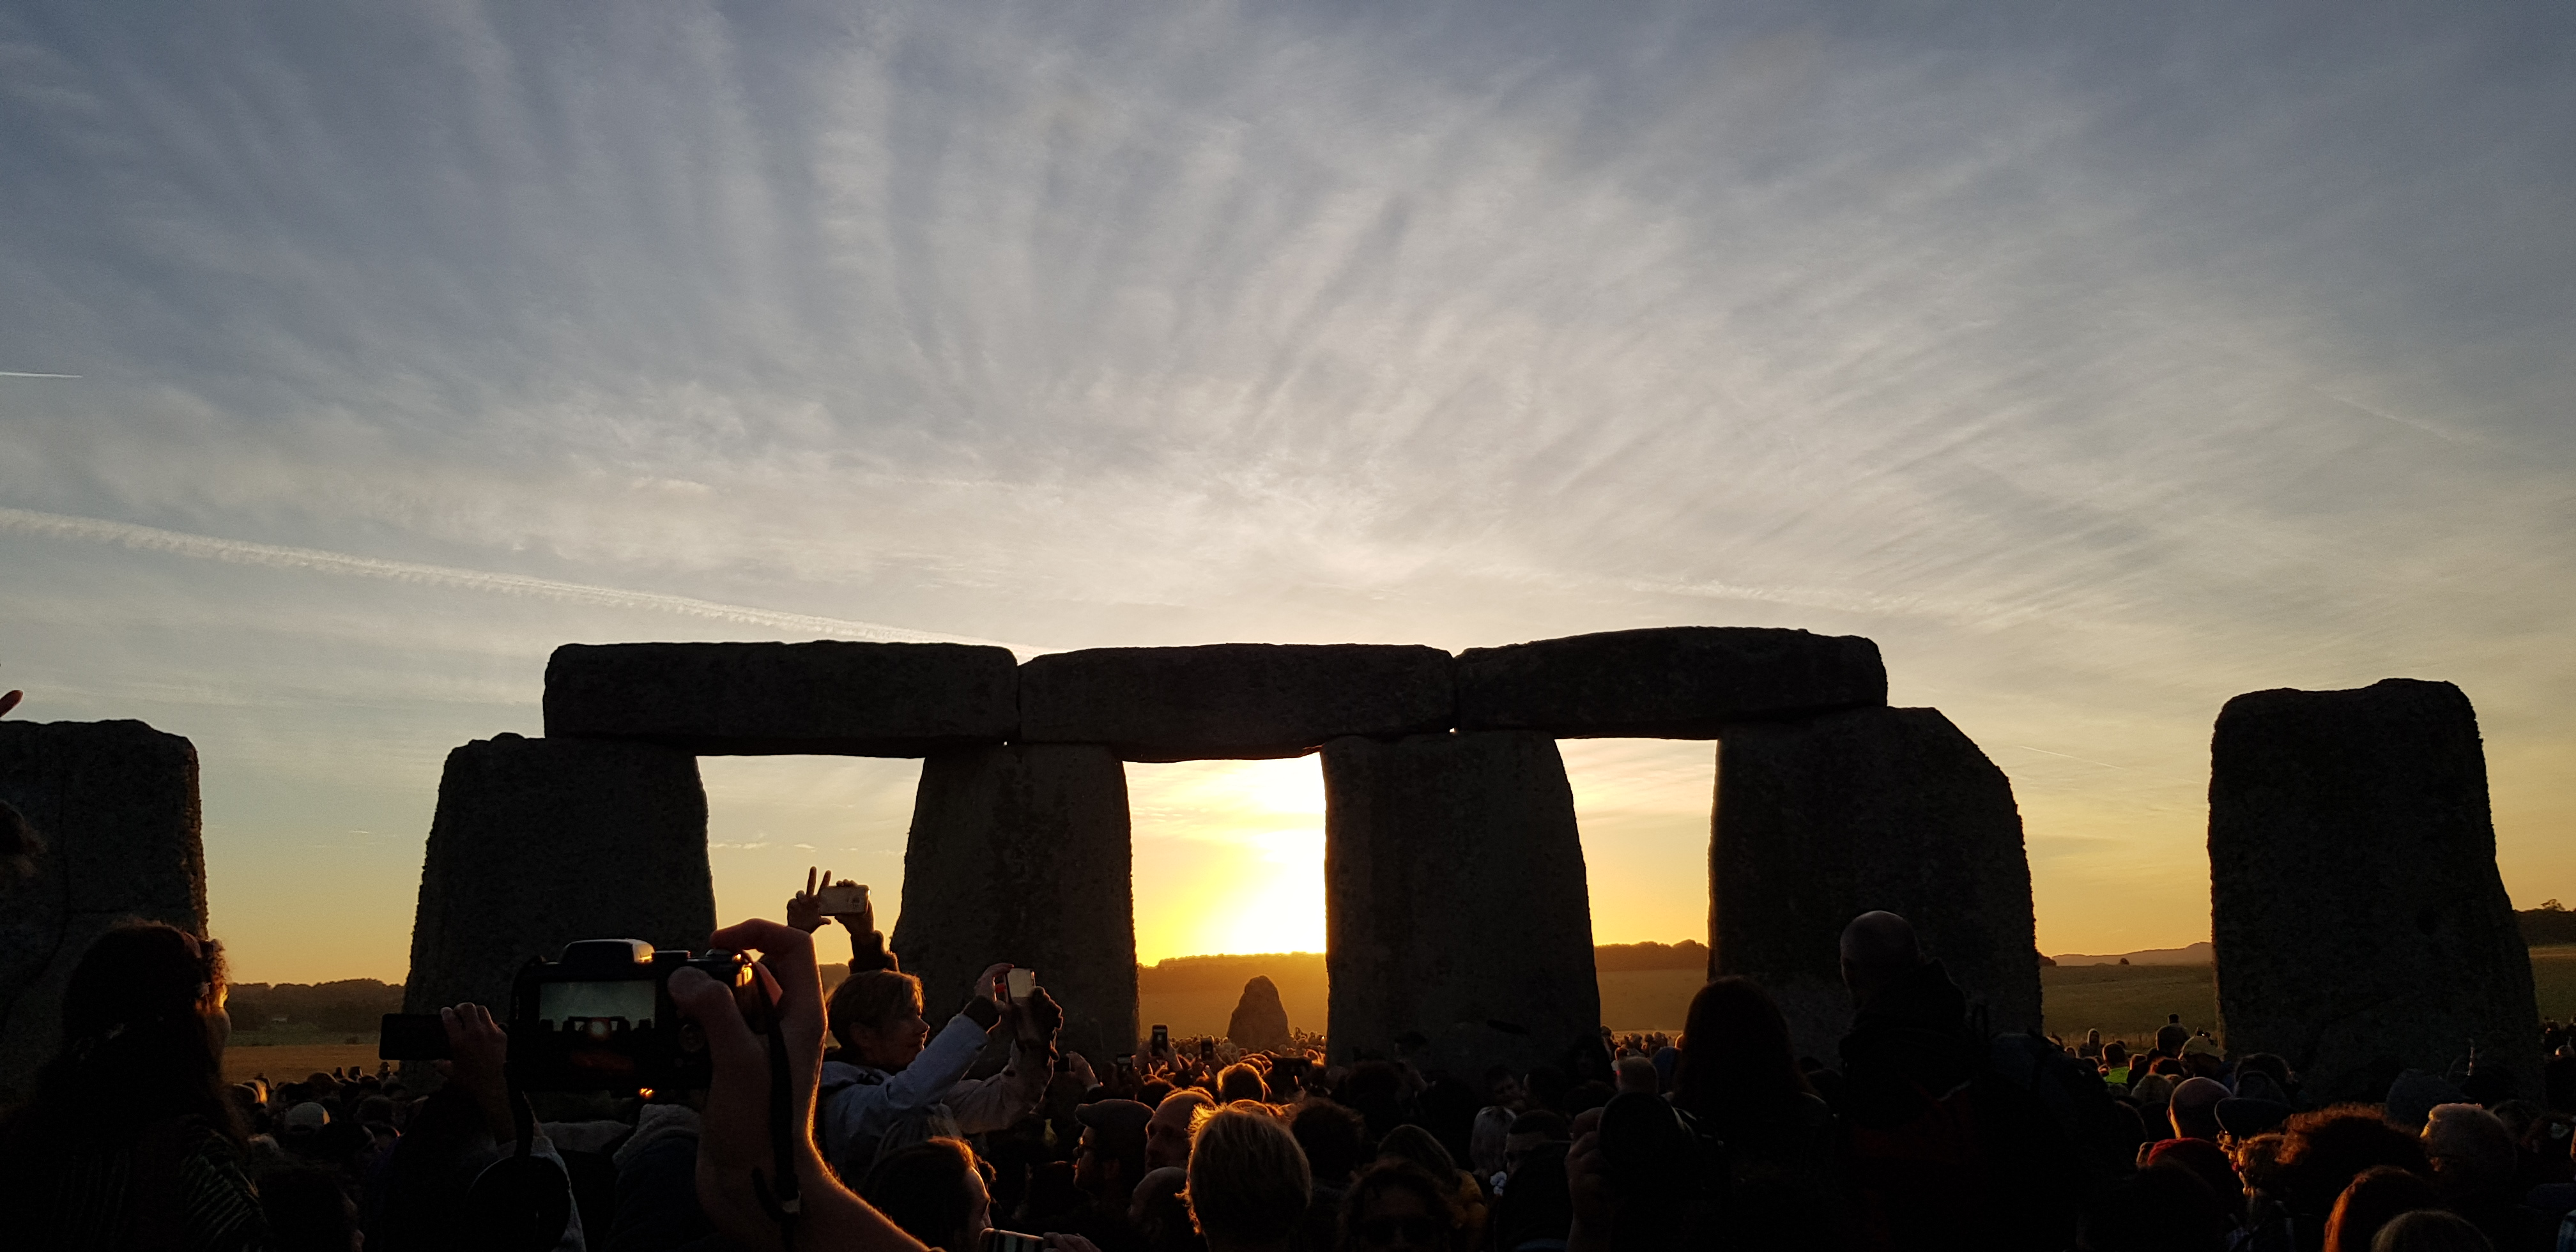 Stonehenge Stone Circle News and Information